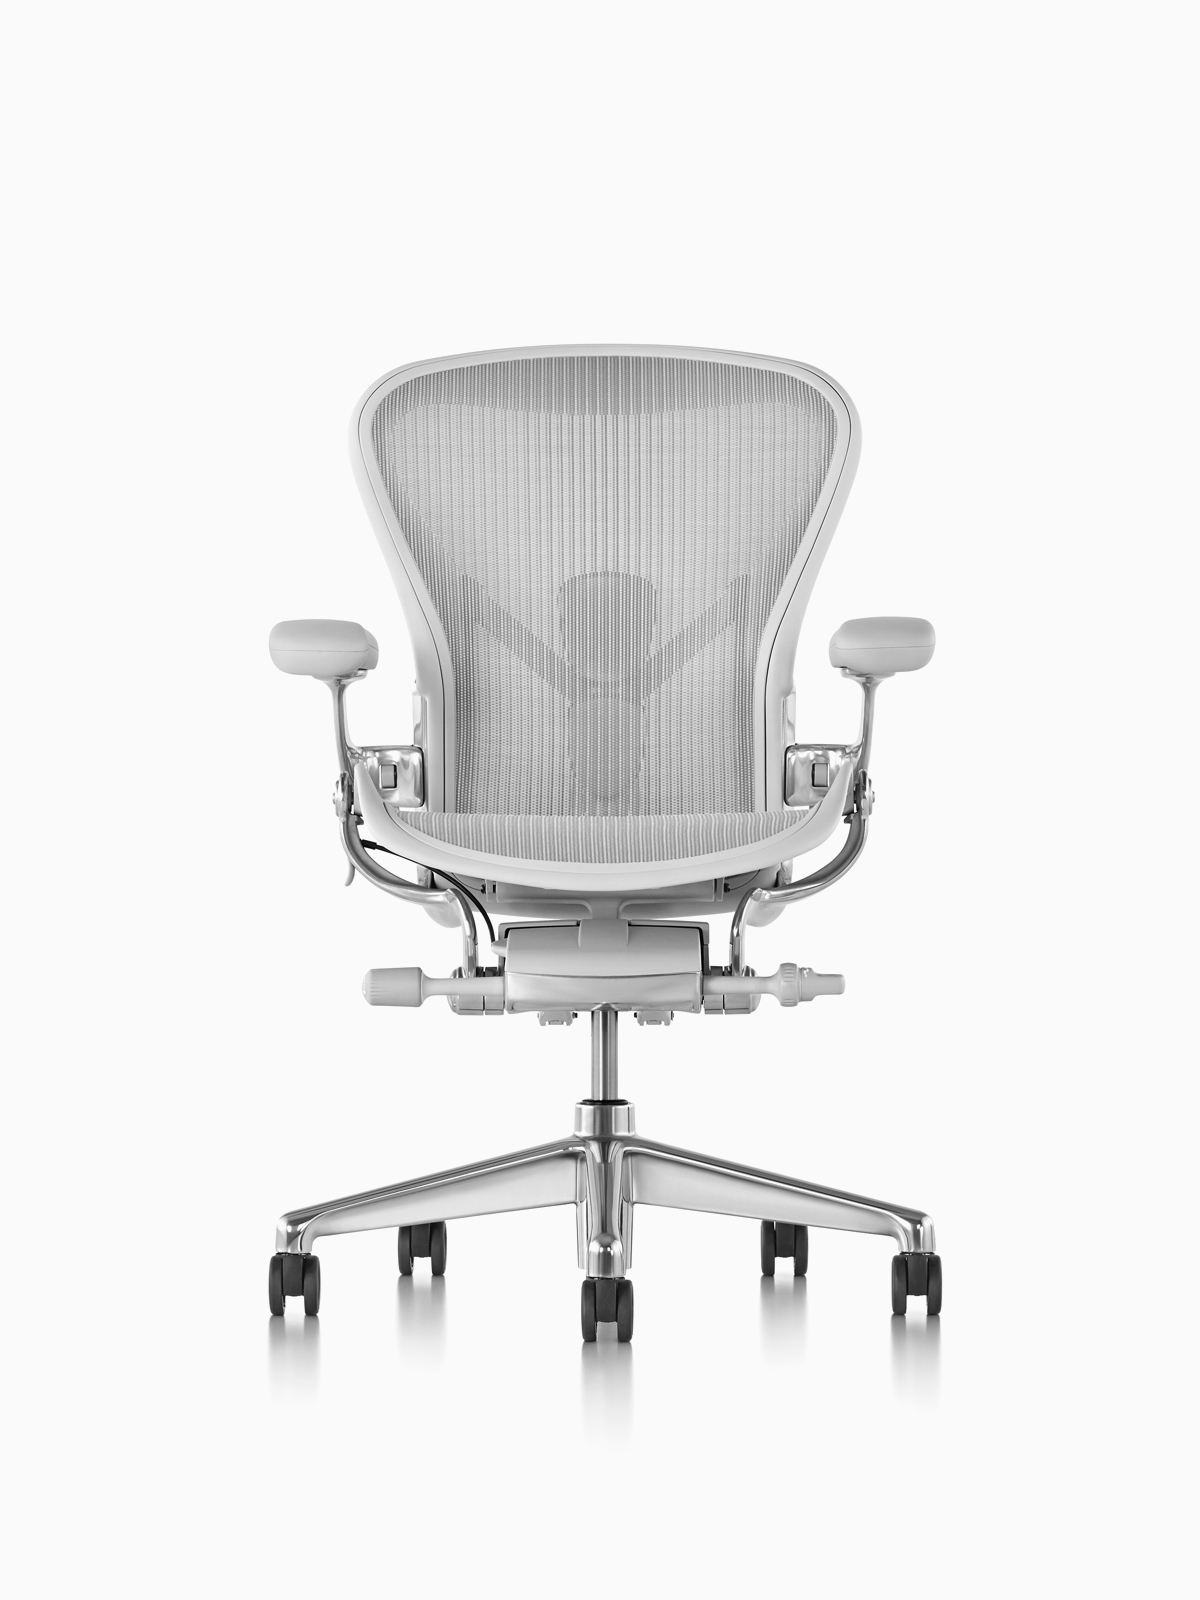 A light gray Aeron Chair.